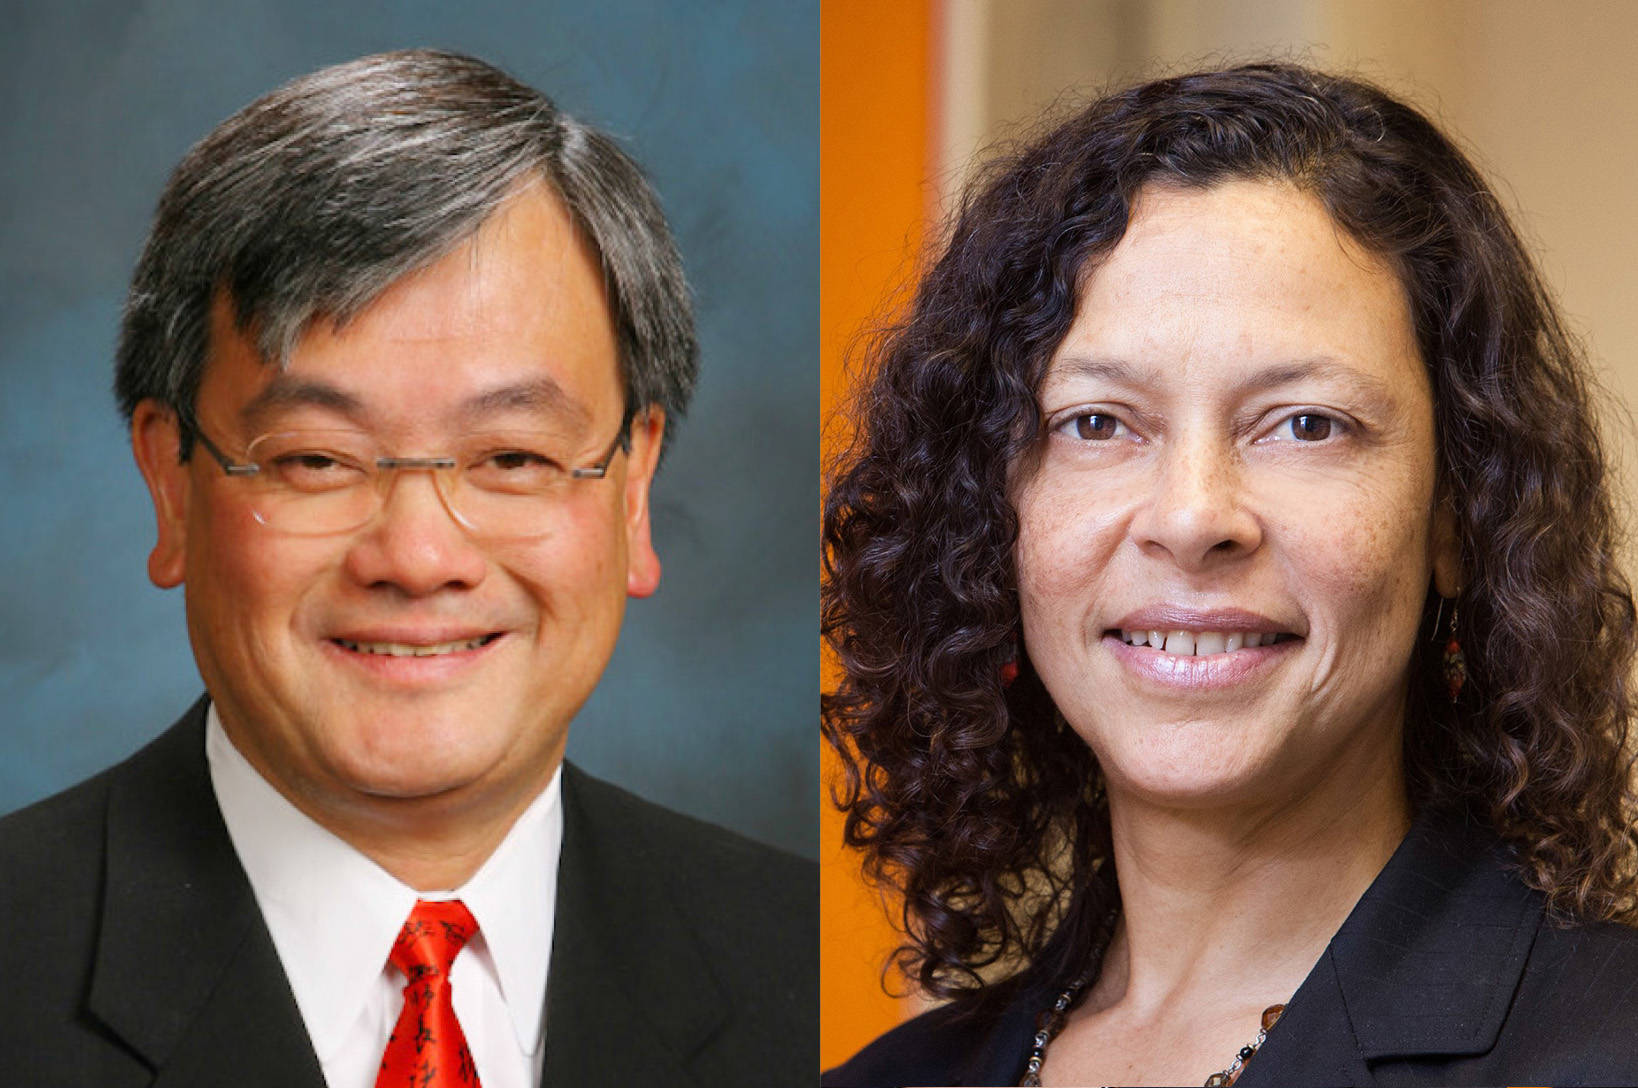 John Yen Wong of the Asian Real Estate Association of America and Maeve Elise Brown of Housing and Economic Rights Advocates are calling for the government to assist affordable housing providers. (Courtesy photo)